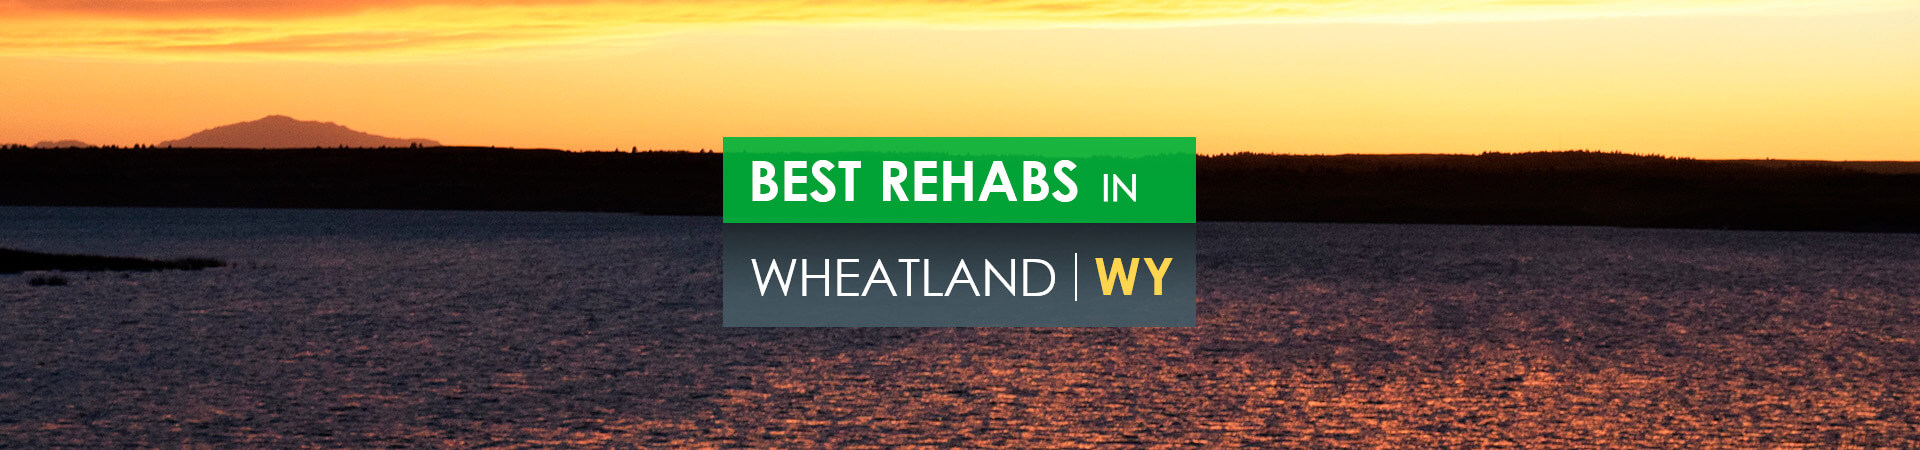 Best rehabs in Wheatland, WY